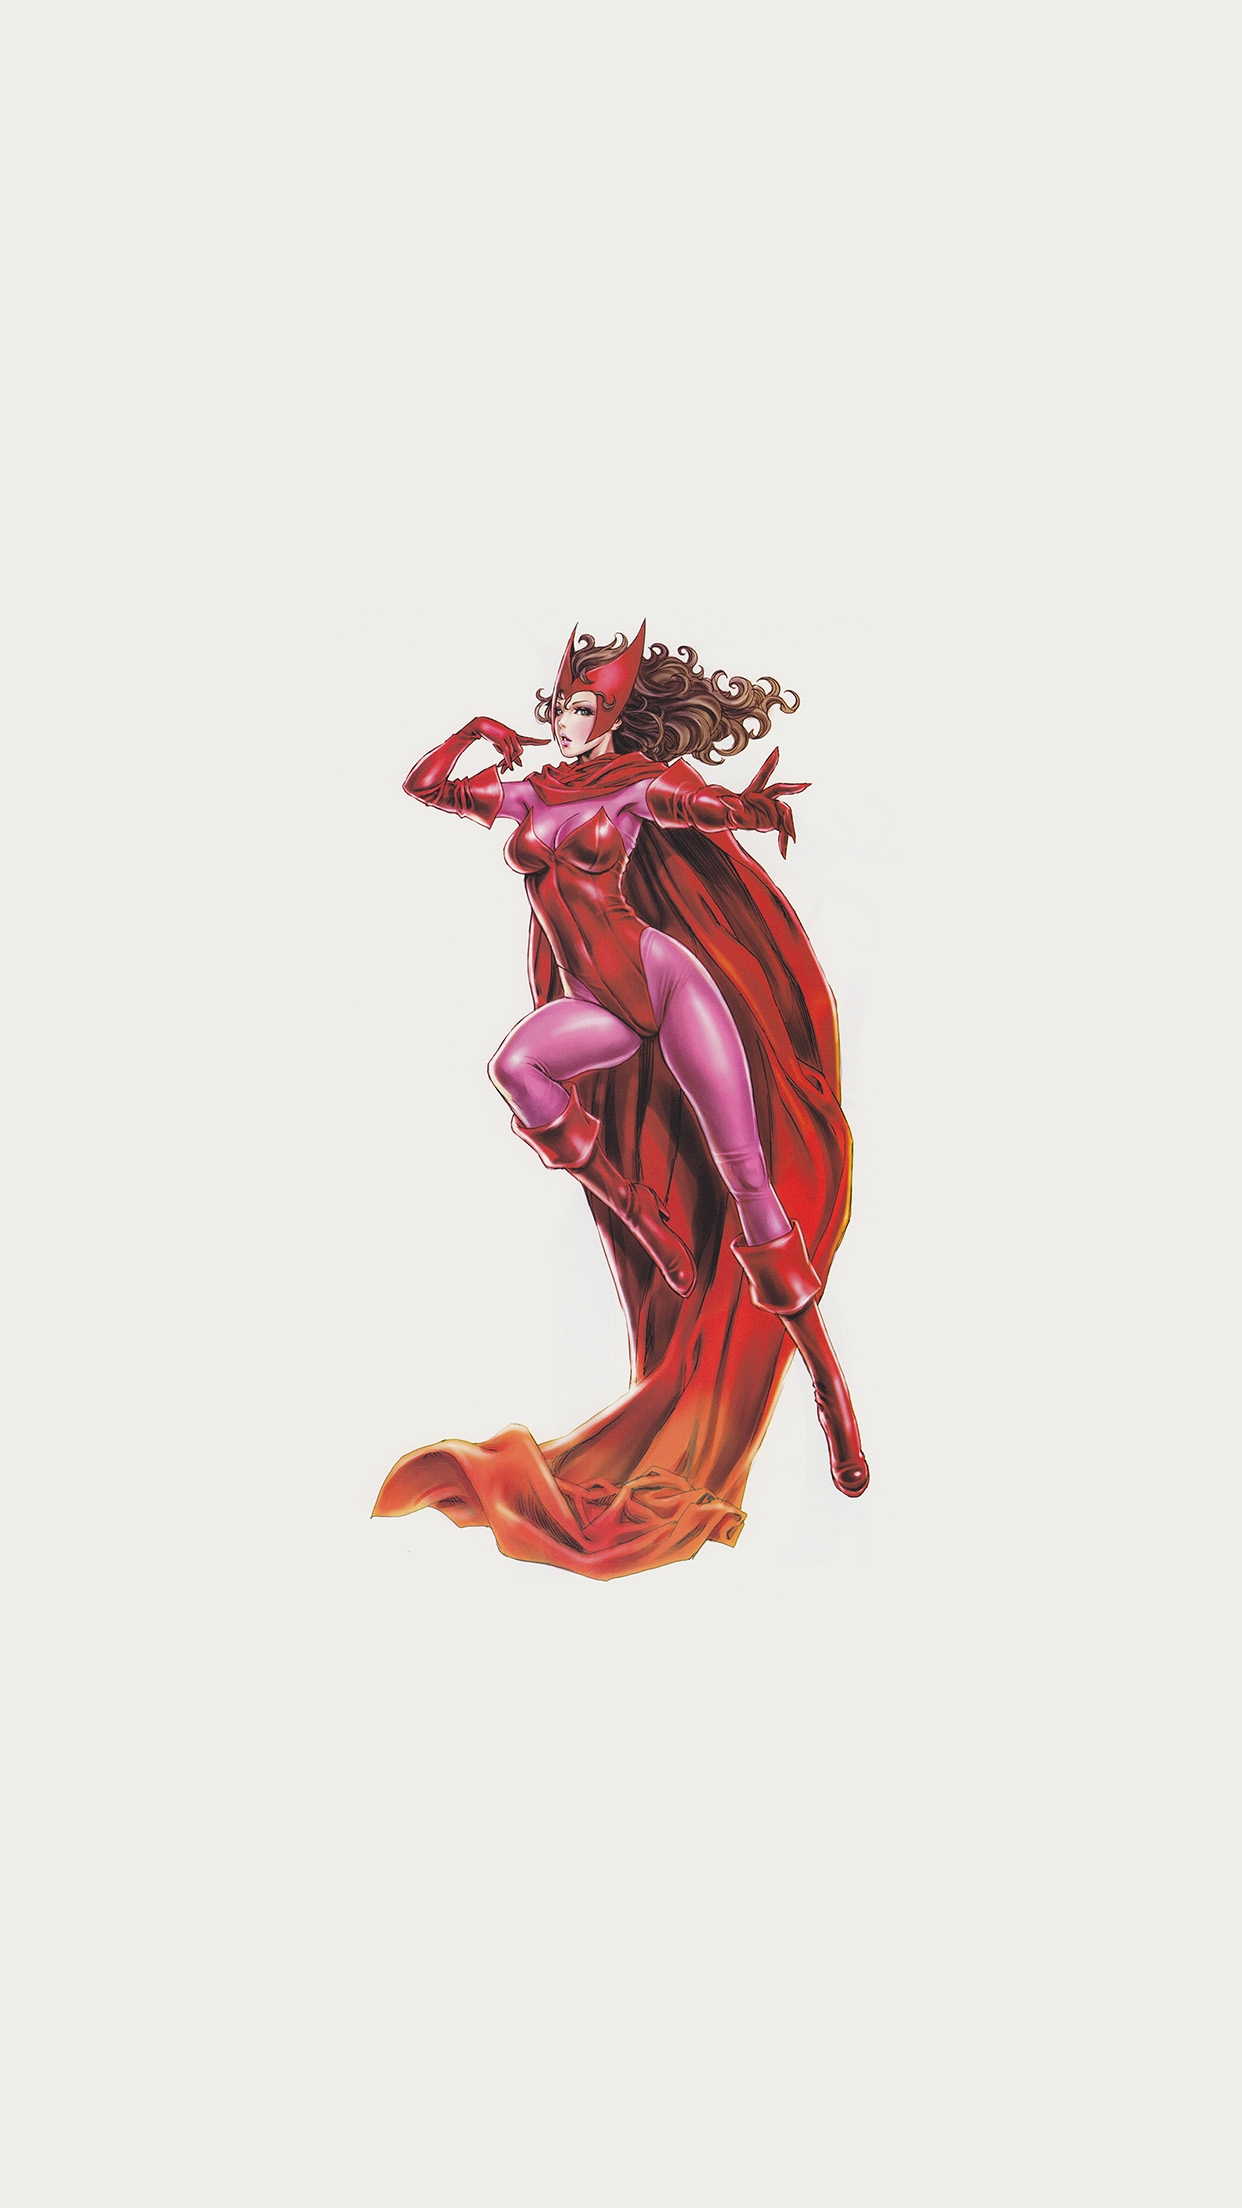 Scarlet Witch Avengers Comics Illust Art Film Android wallpaper